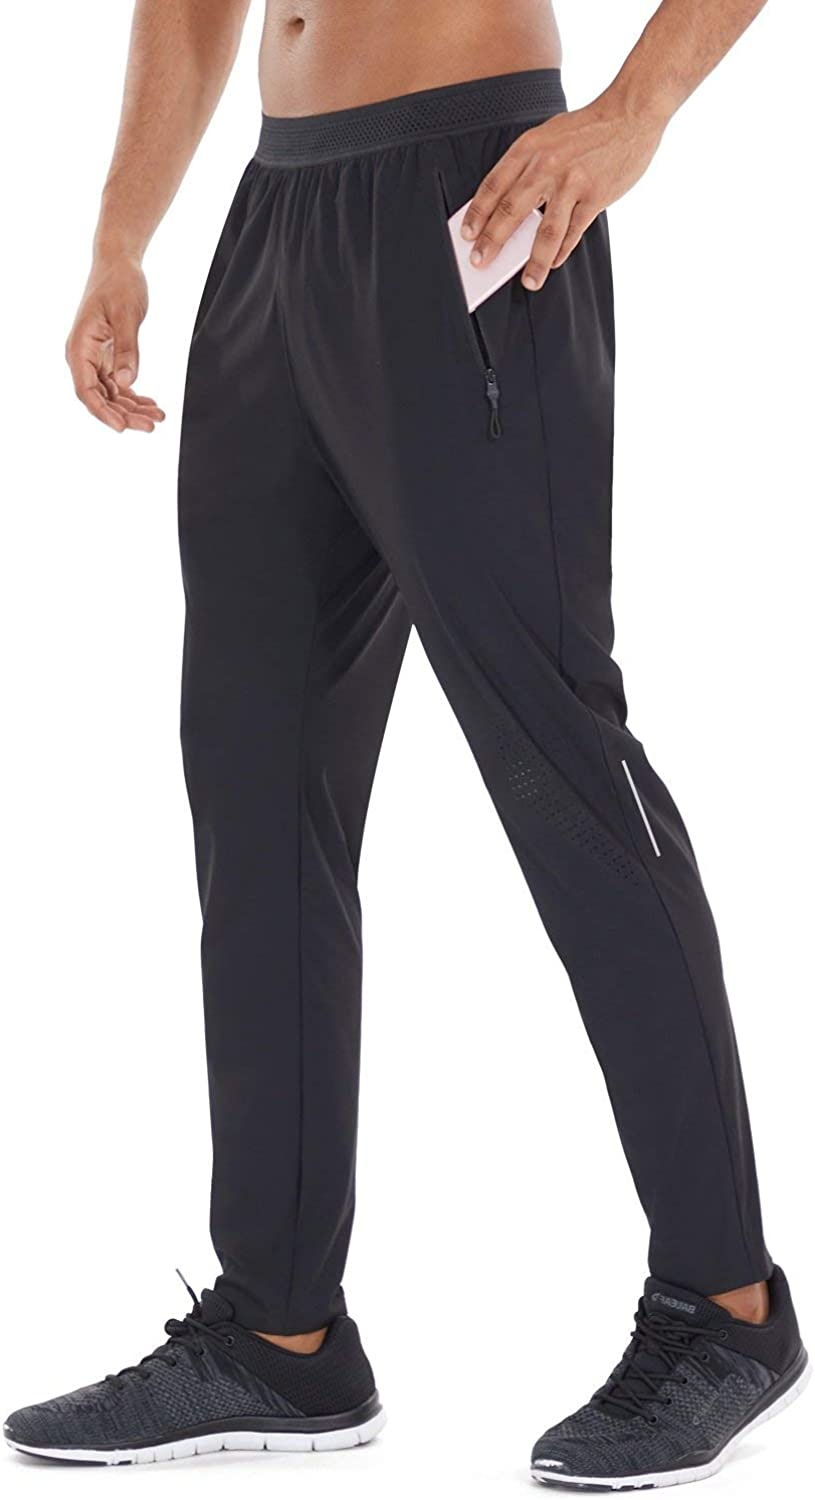 BALEAF EVO Men's Athletic Lightweight Joggers with Zipper Pockets Workout Cooling Quick Dry Tapered Running Pants Gym Sport